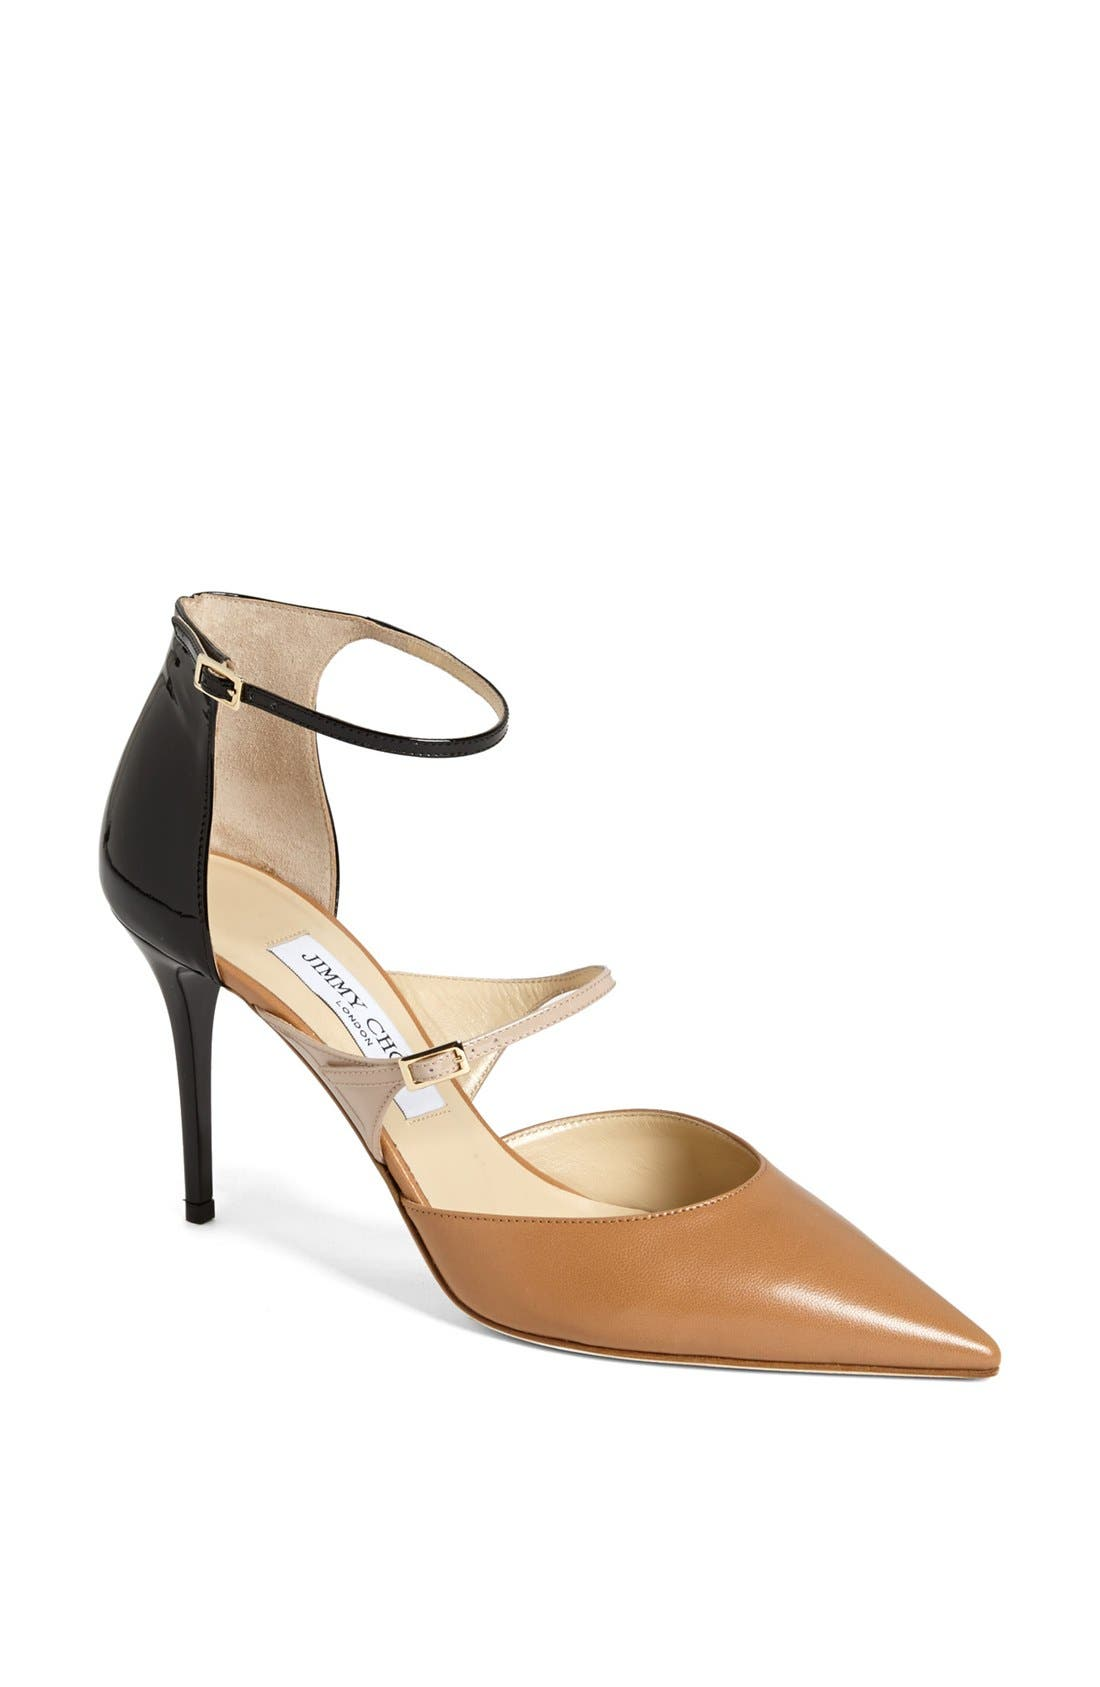 Alternate Image 1 Selected - Jimmy Choo 'Twist' Ankle Strap Pump